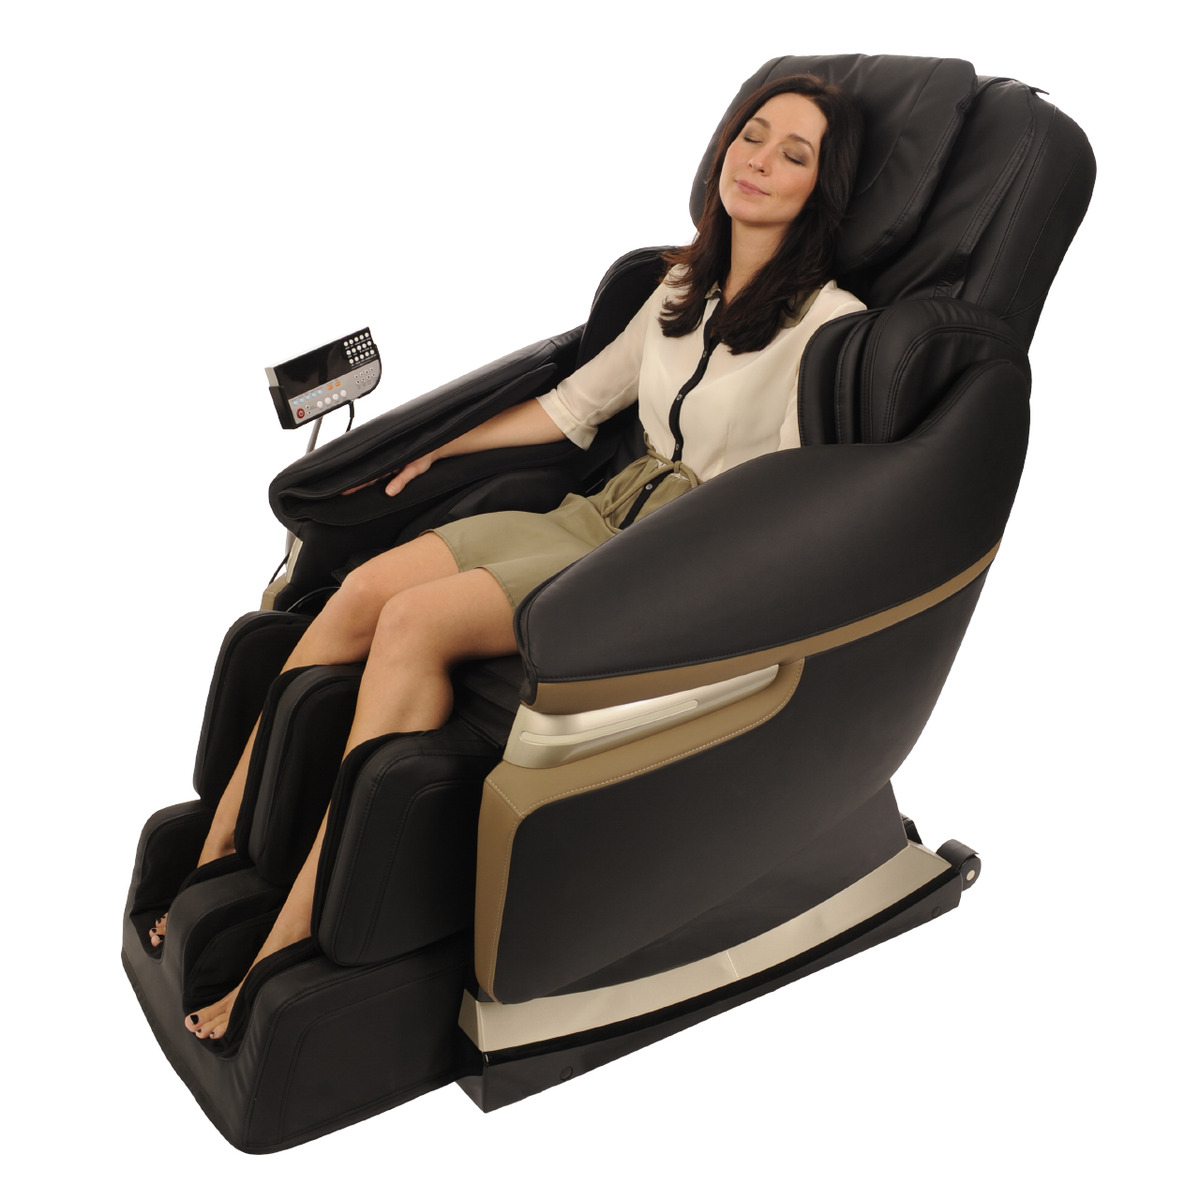 Affordable Massage Chairs South Carolina